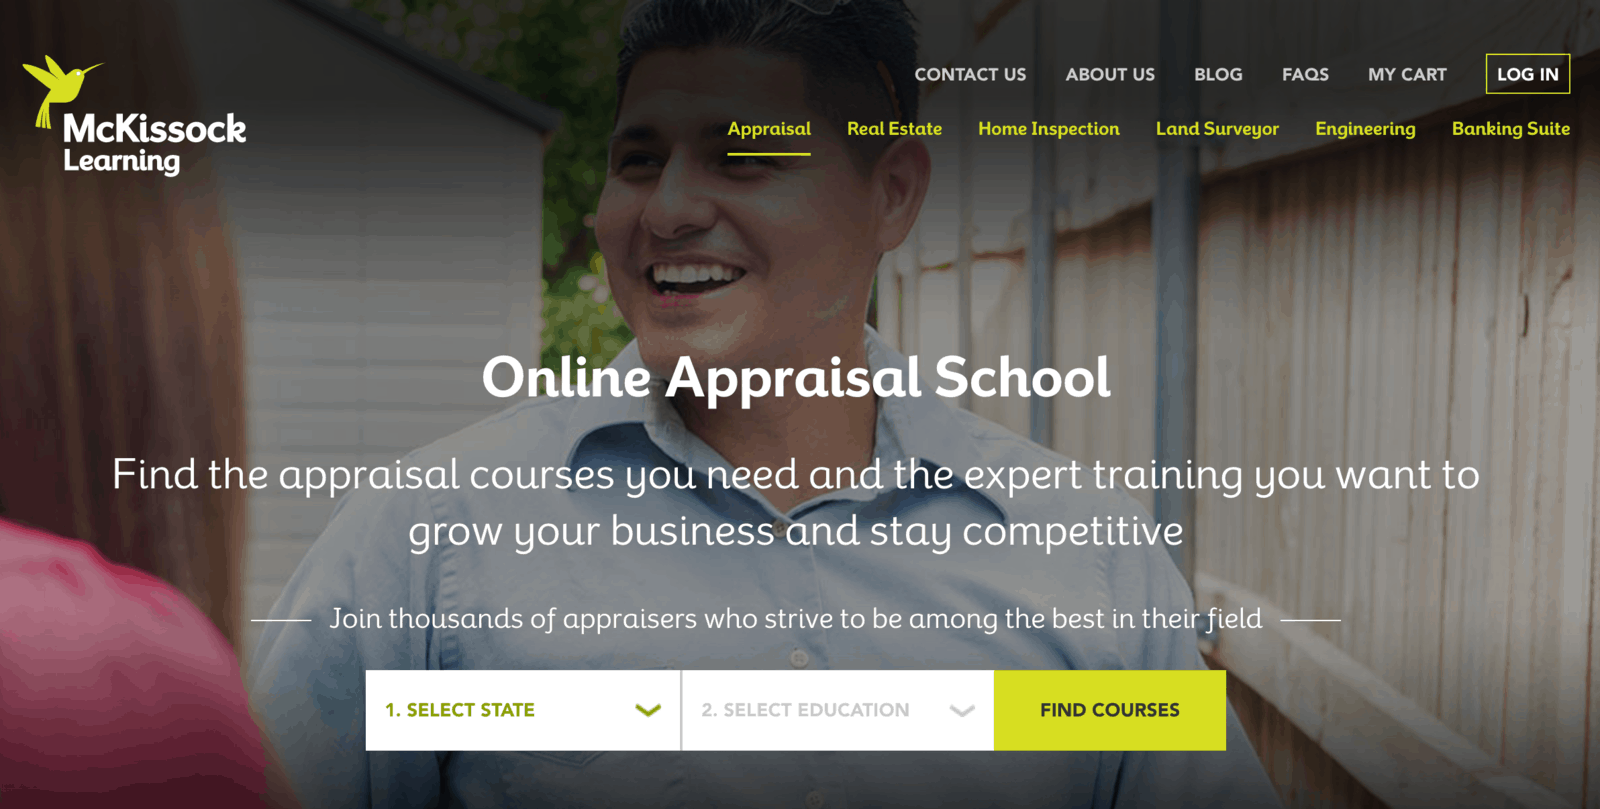 Home page of McKissock Learning's online appraisal school, where users can search for courses by state